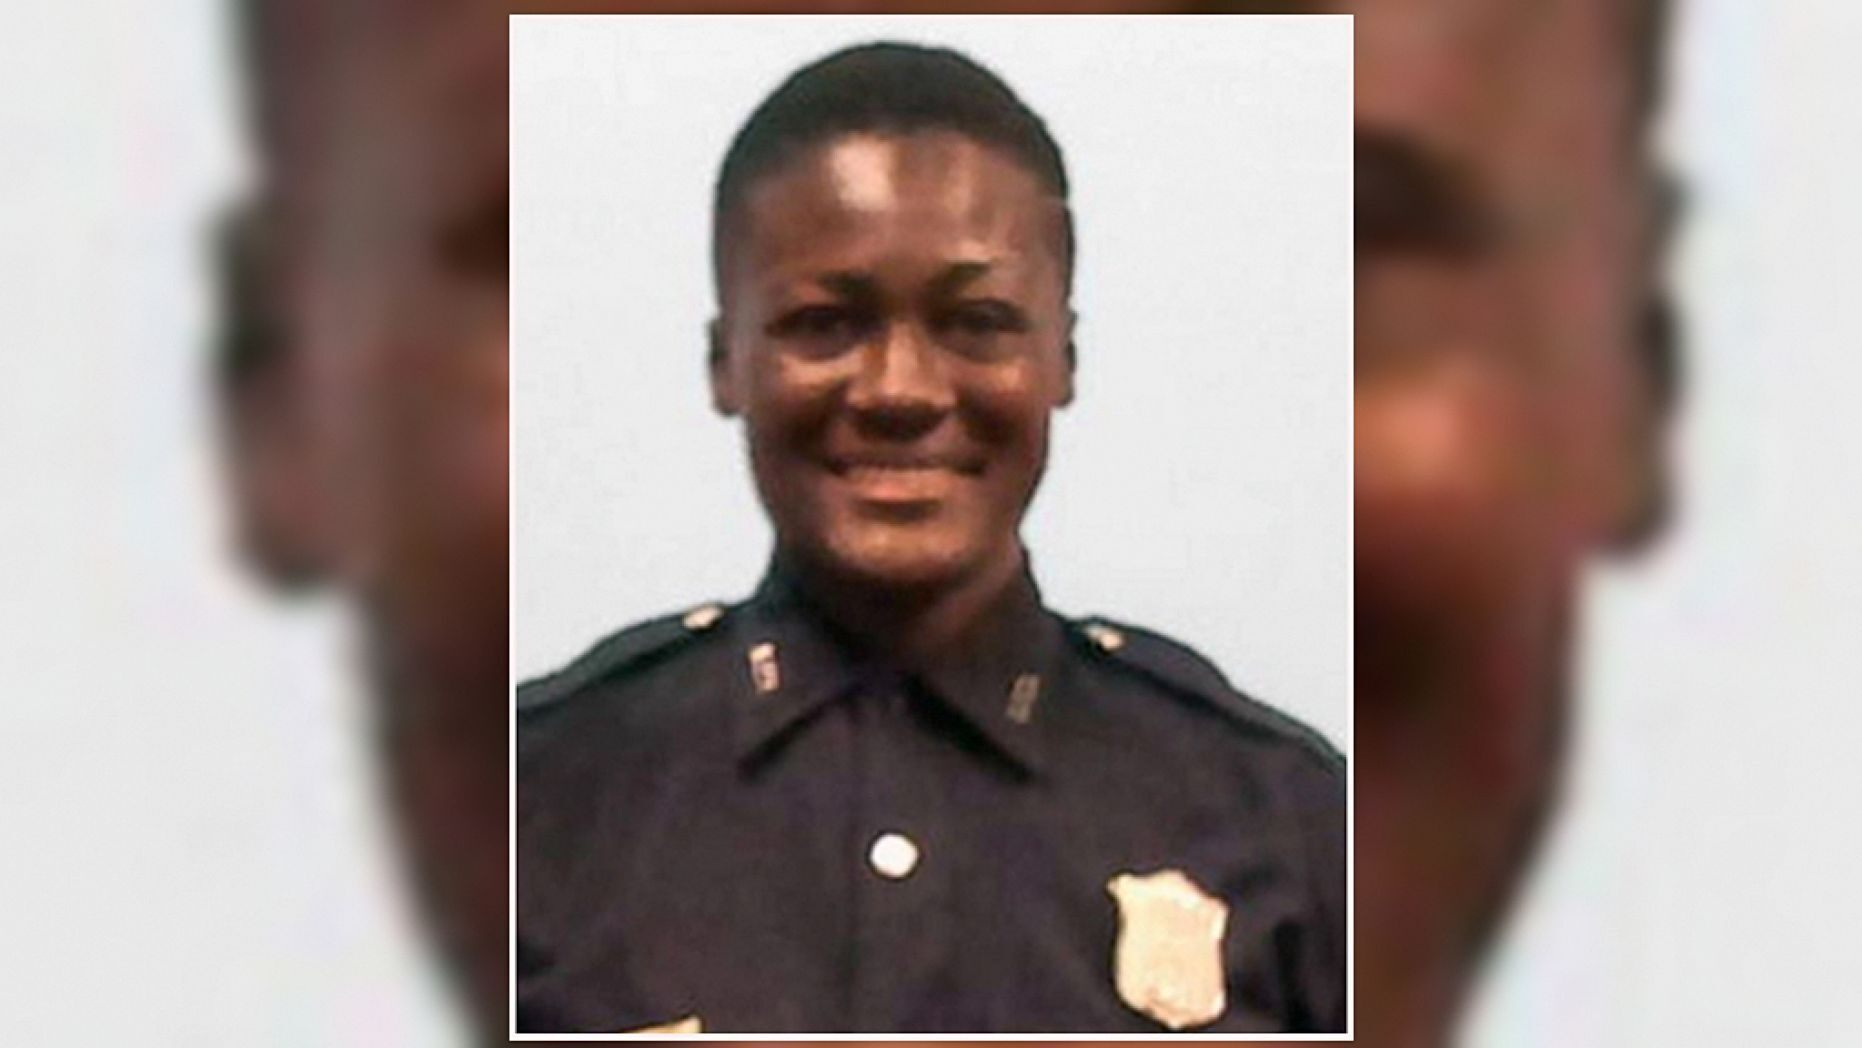 Keisha Richburg was fired from the Atlanta Police Department on Monday after money was missing from